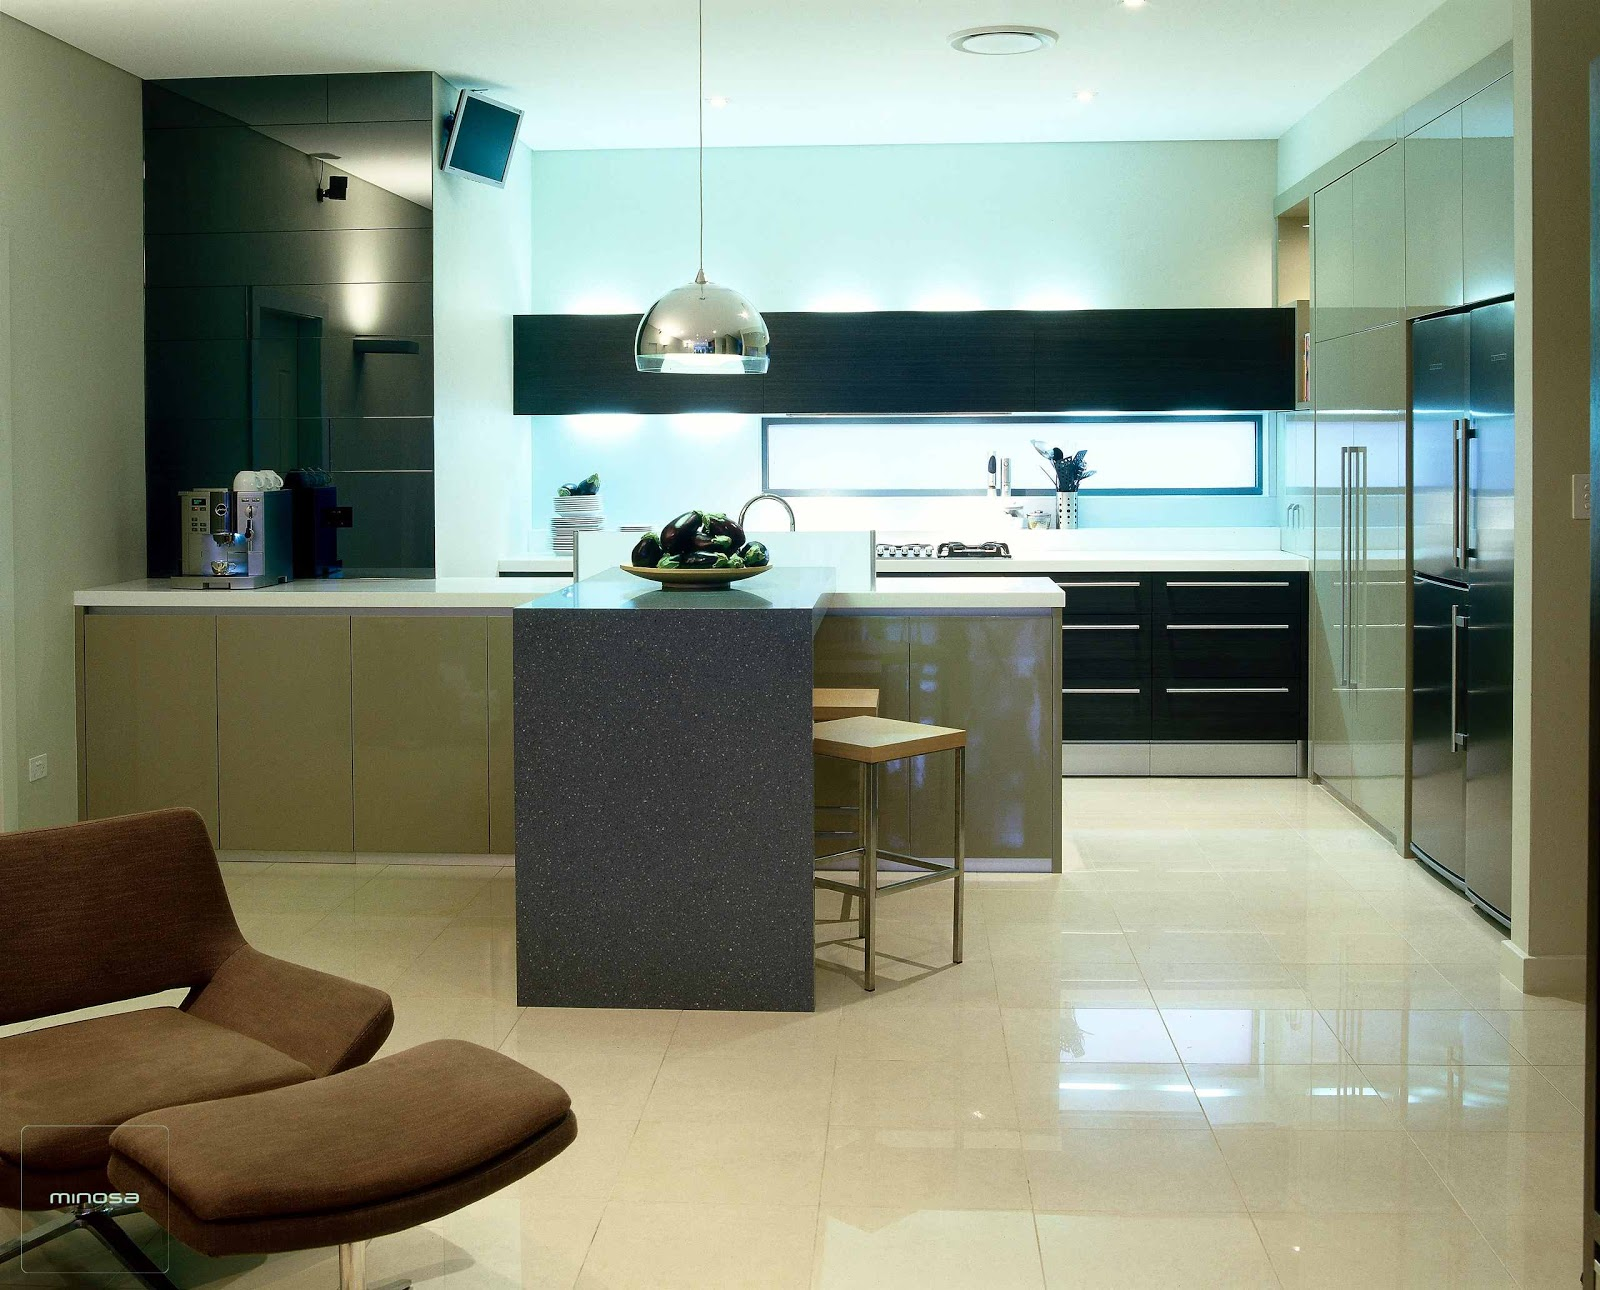 Minosa Kitchen Design The Balancing Act Between Design Function